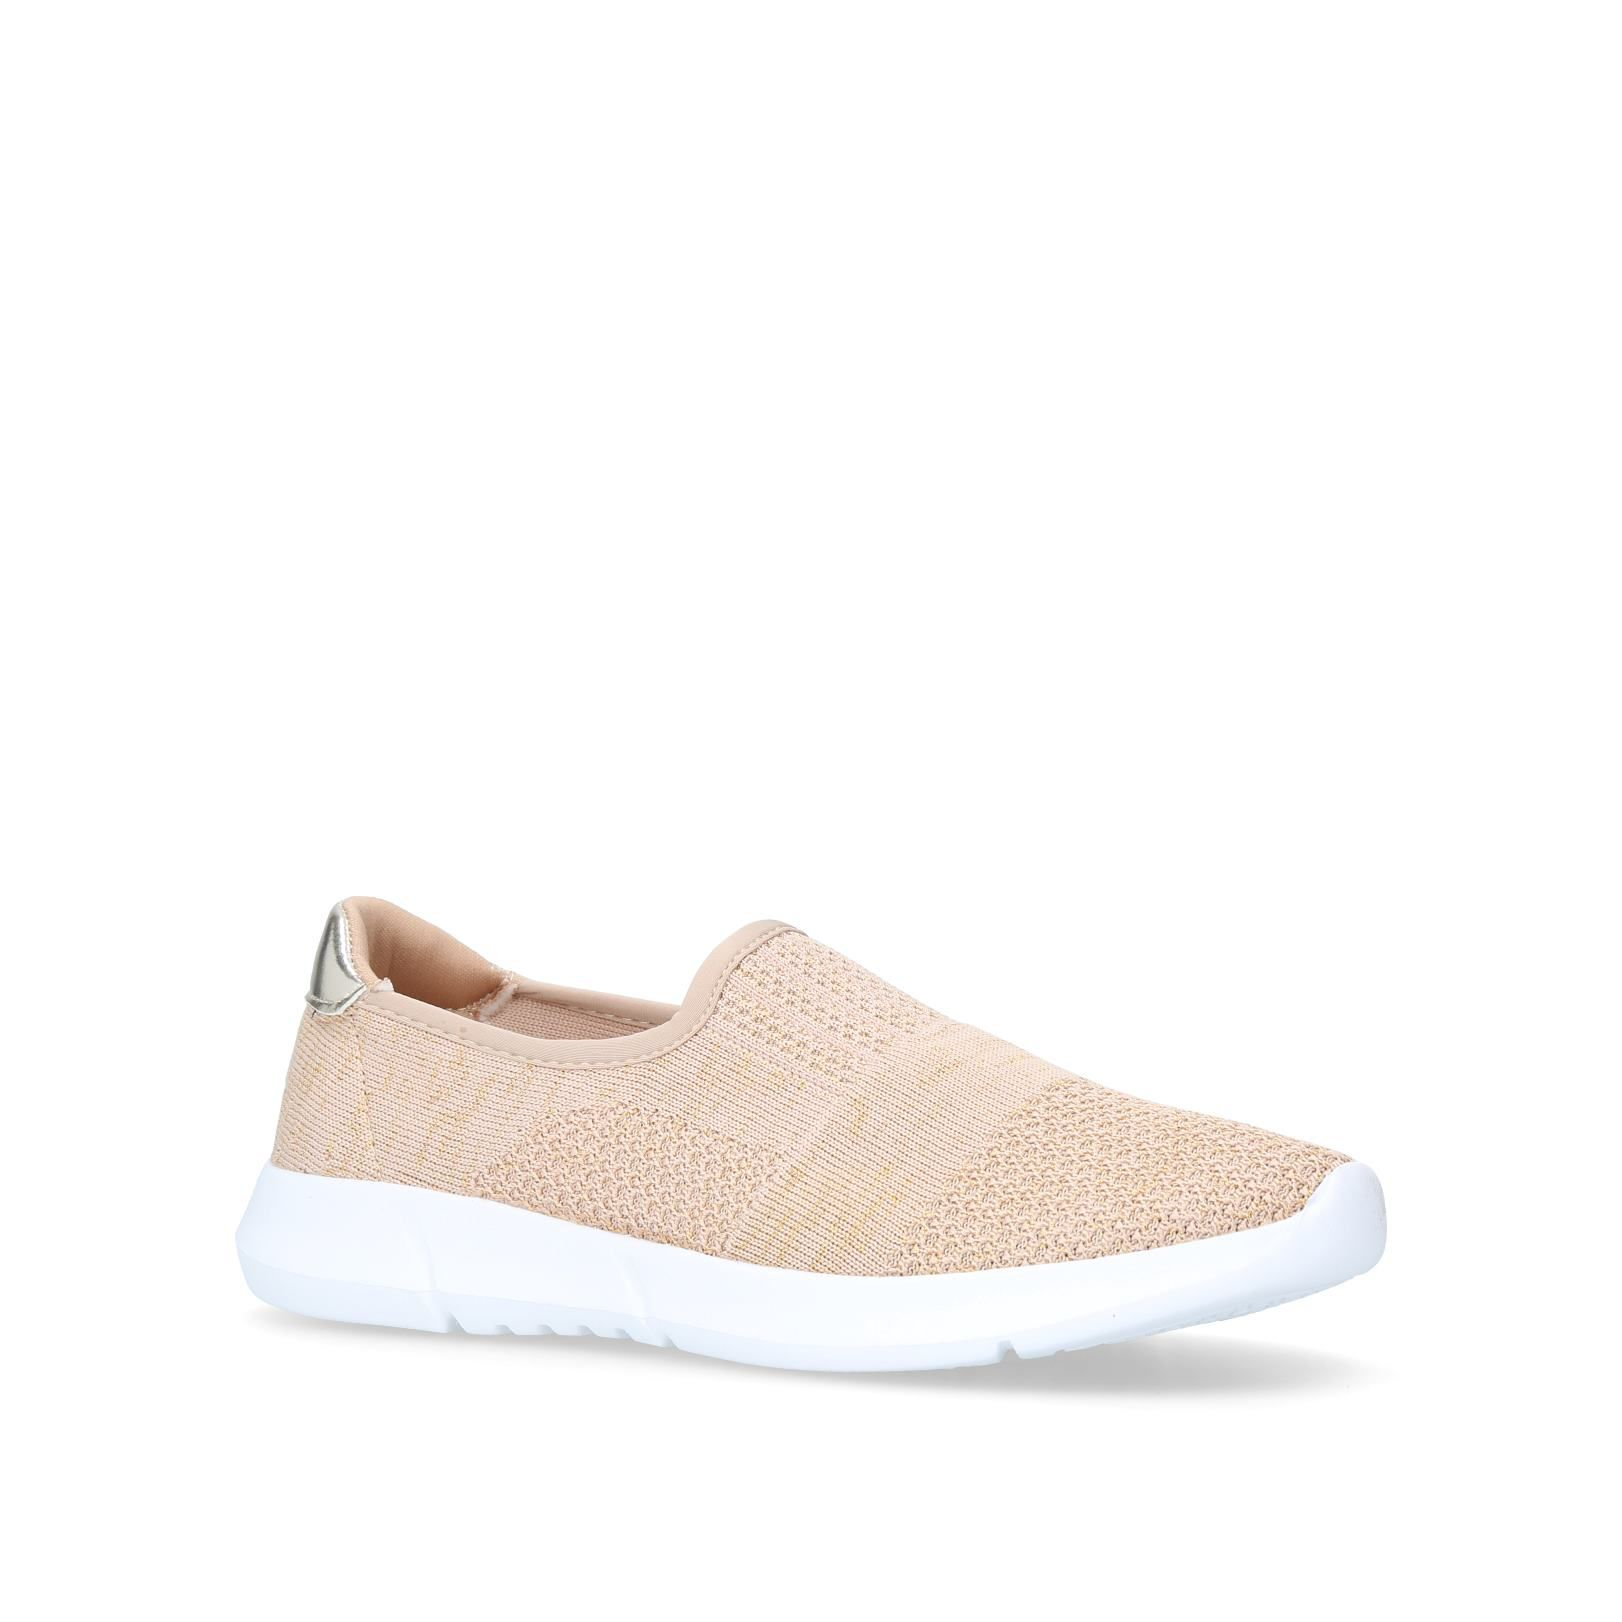 Carvela Comfort Carly Trainers, Gold